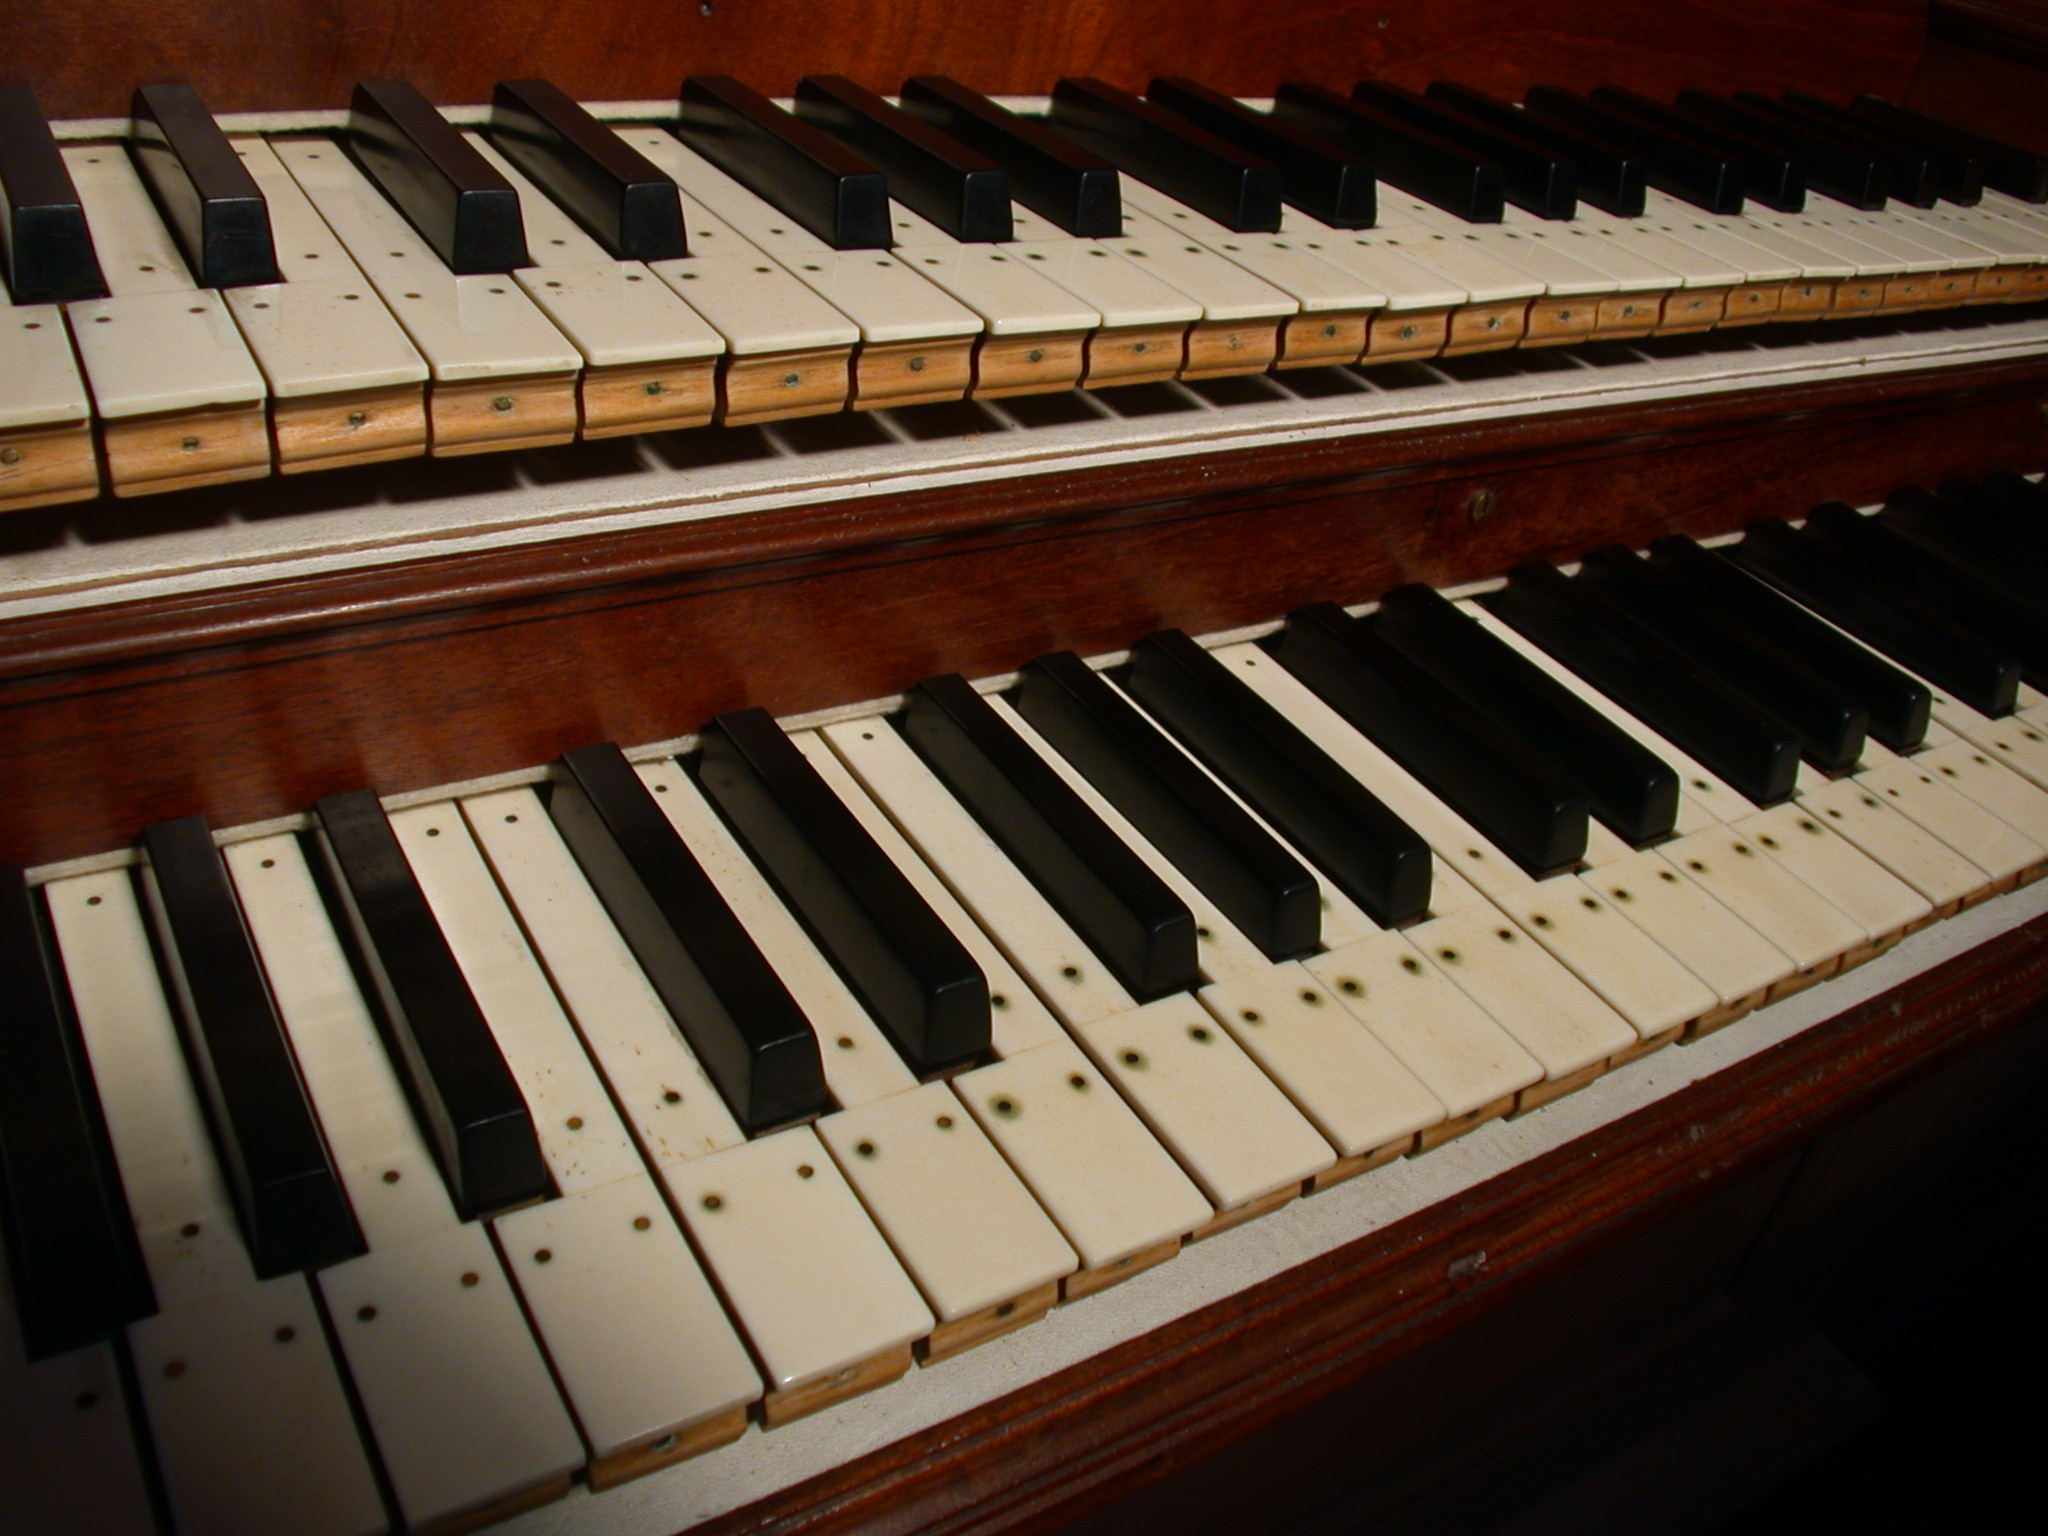 piano keyboard key keys black and white ebony and ivory old wooden musical instrument